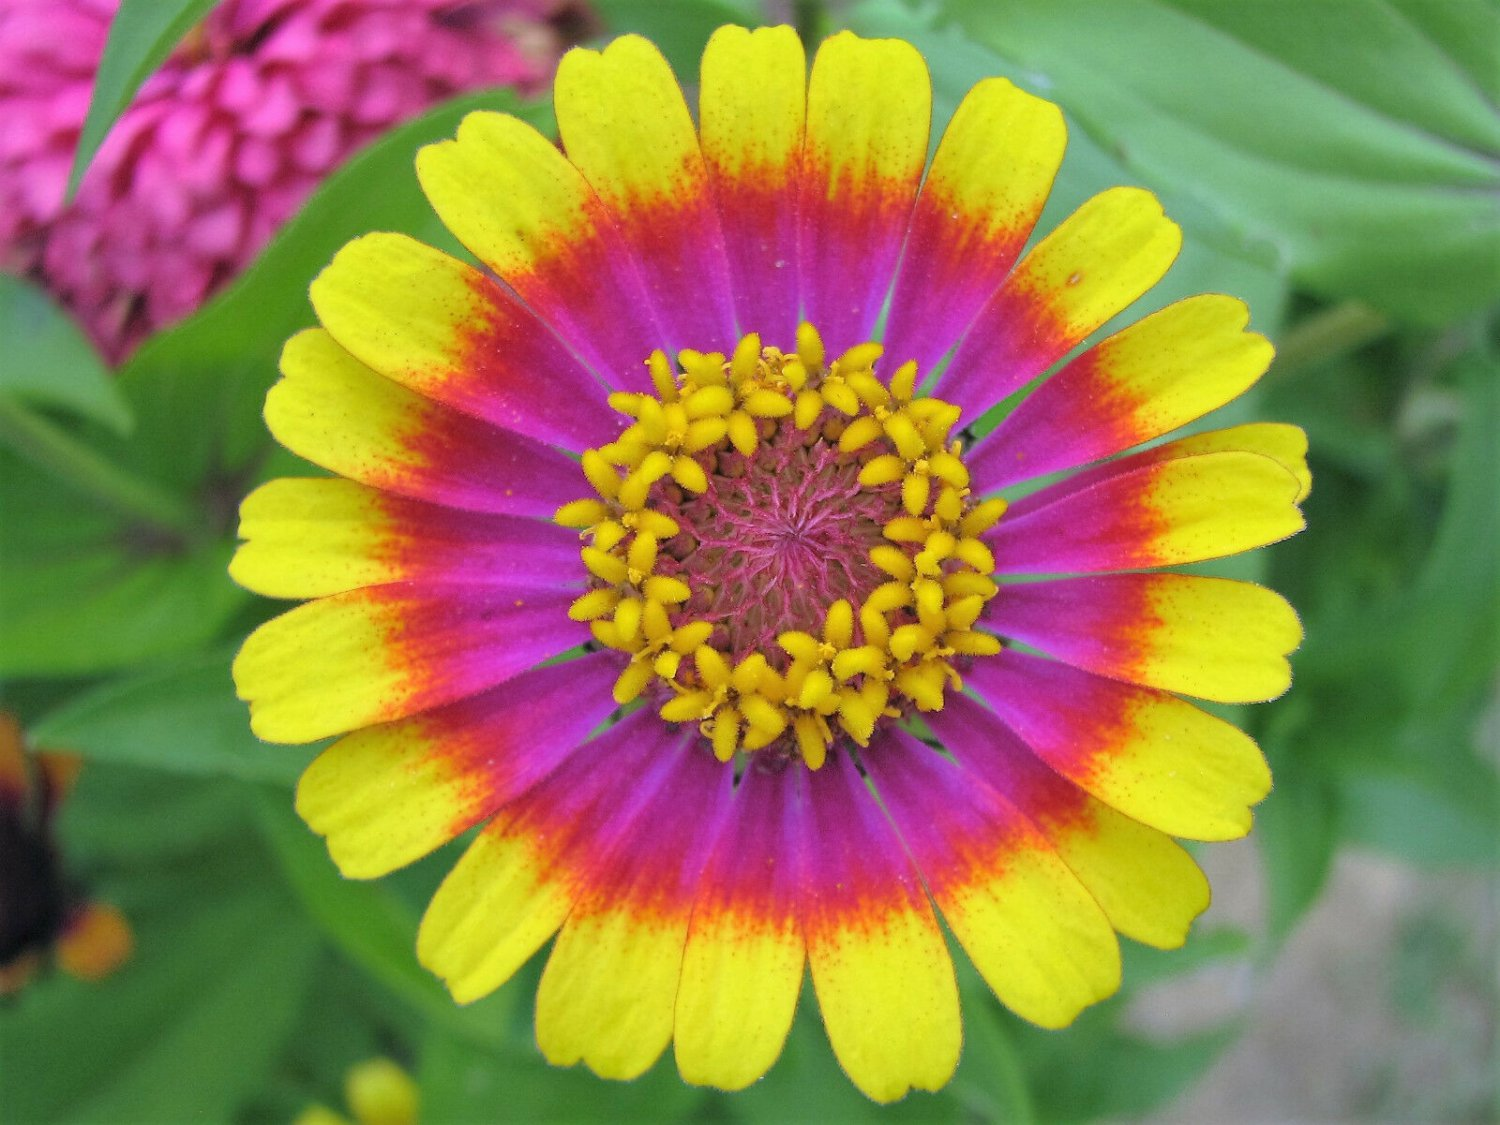 150 Carousel Mix Zinnia Elegans Carrousel Flower Seeds Mixed Colors Two & 3 ToneShip From USA